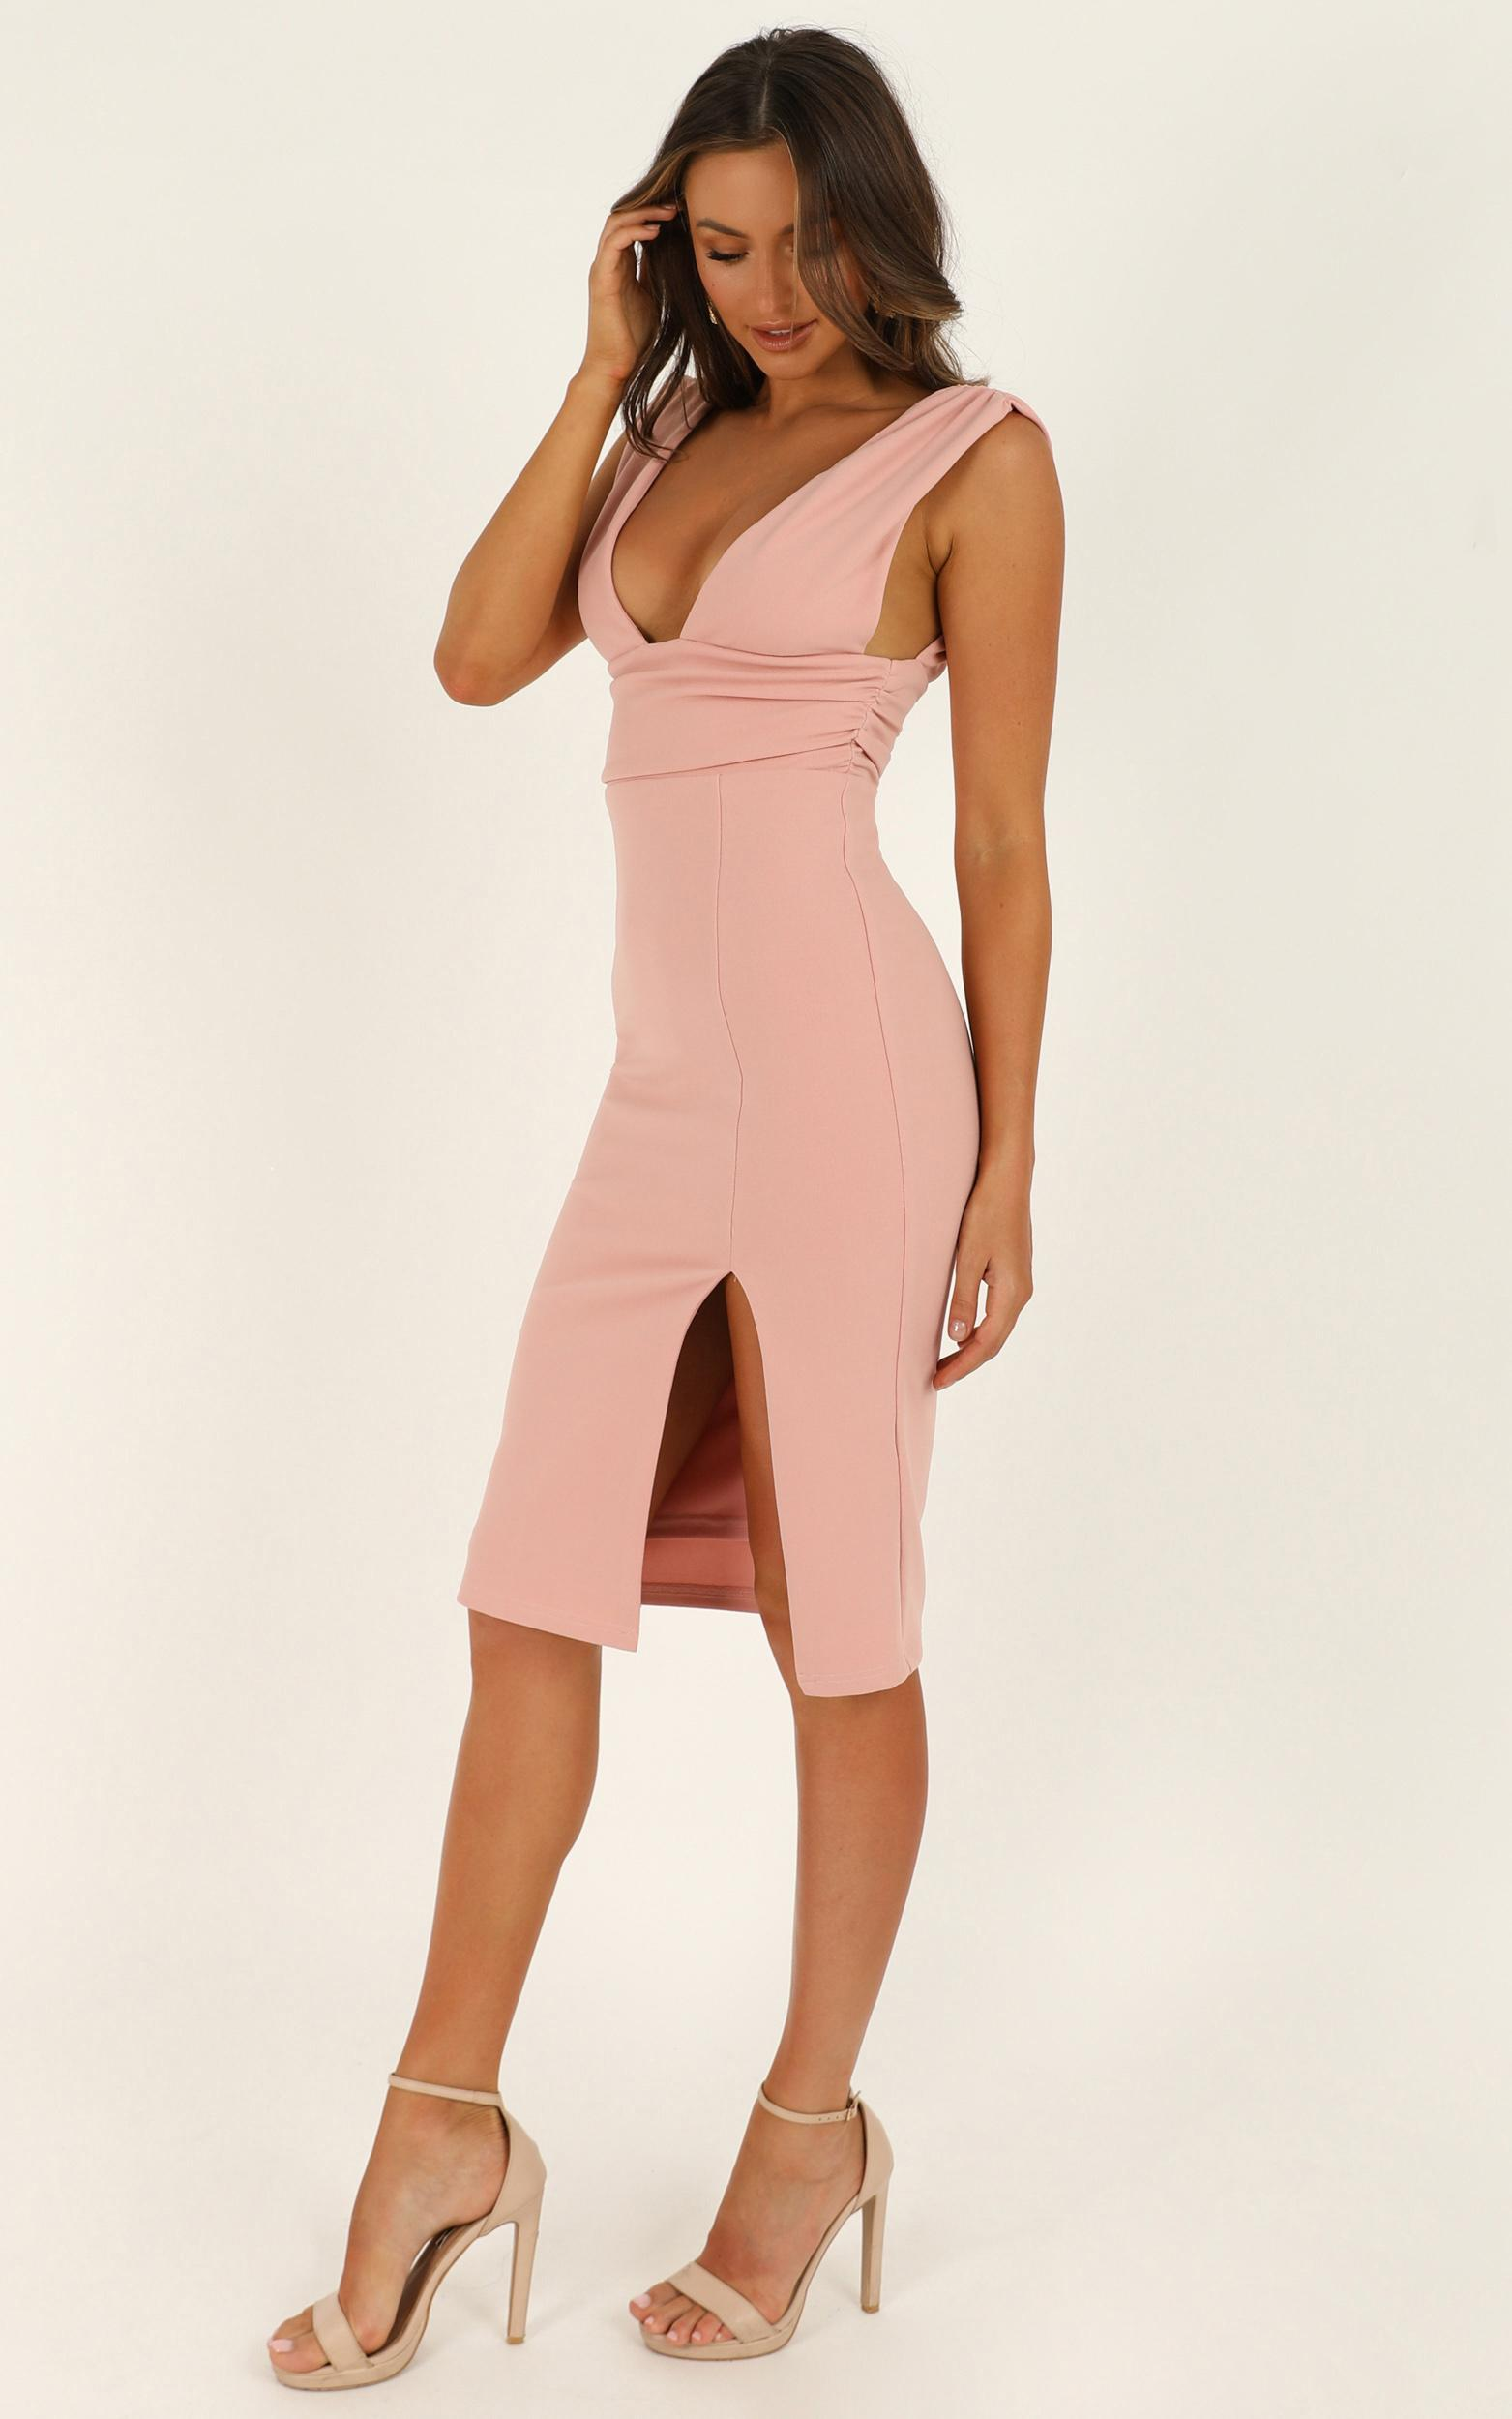 Dont Catch Feelings Dress in blush - 20 (XXXXL), Blush, hi-res image number null